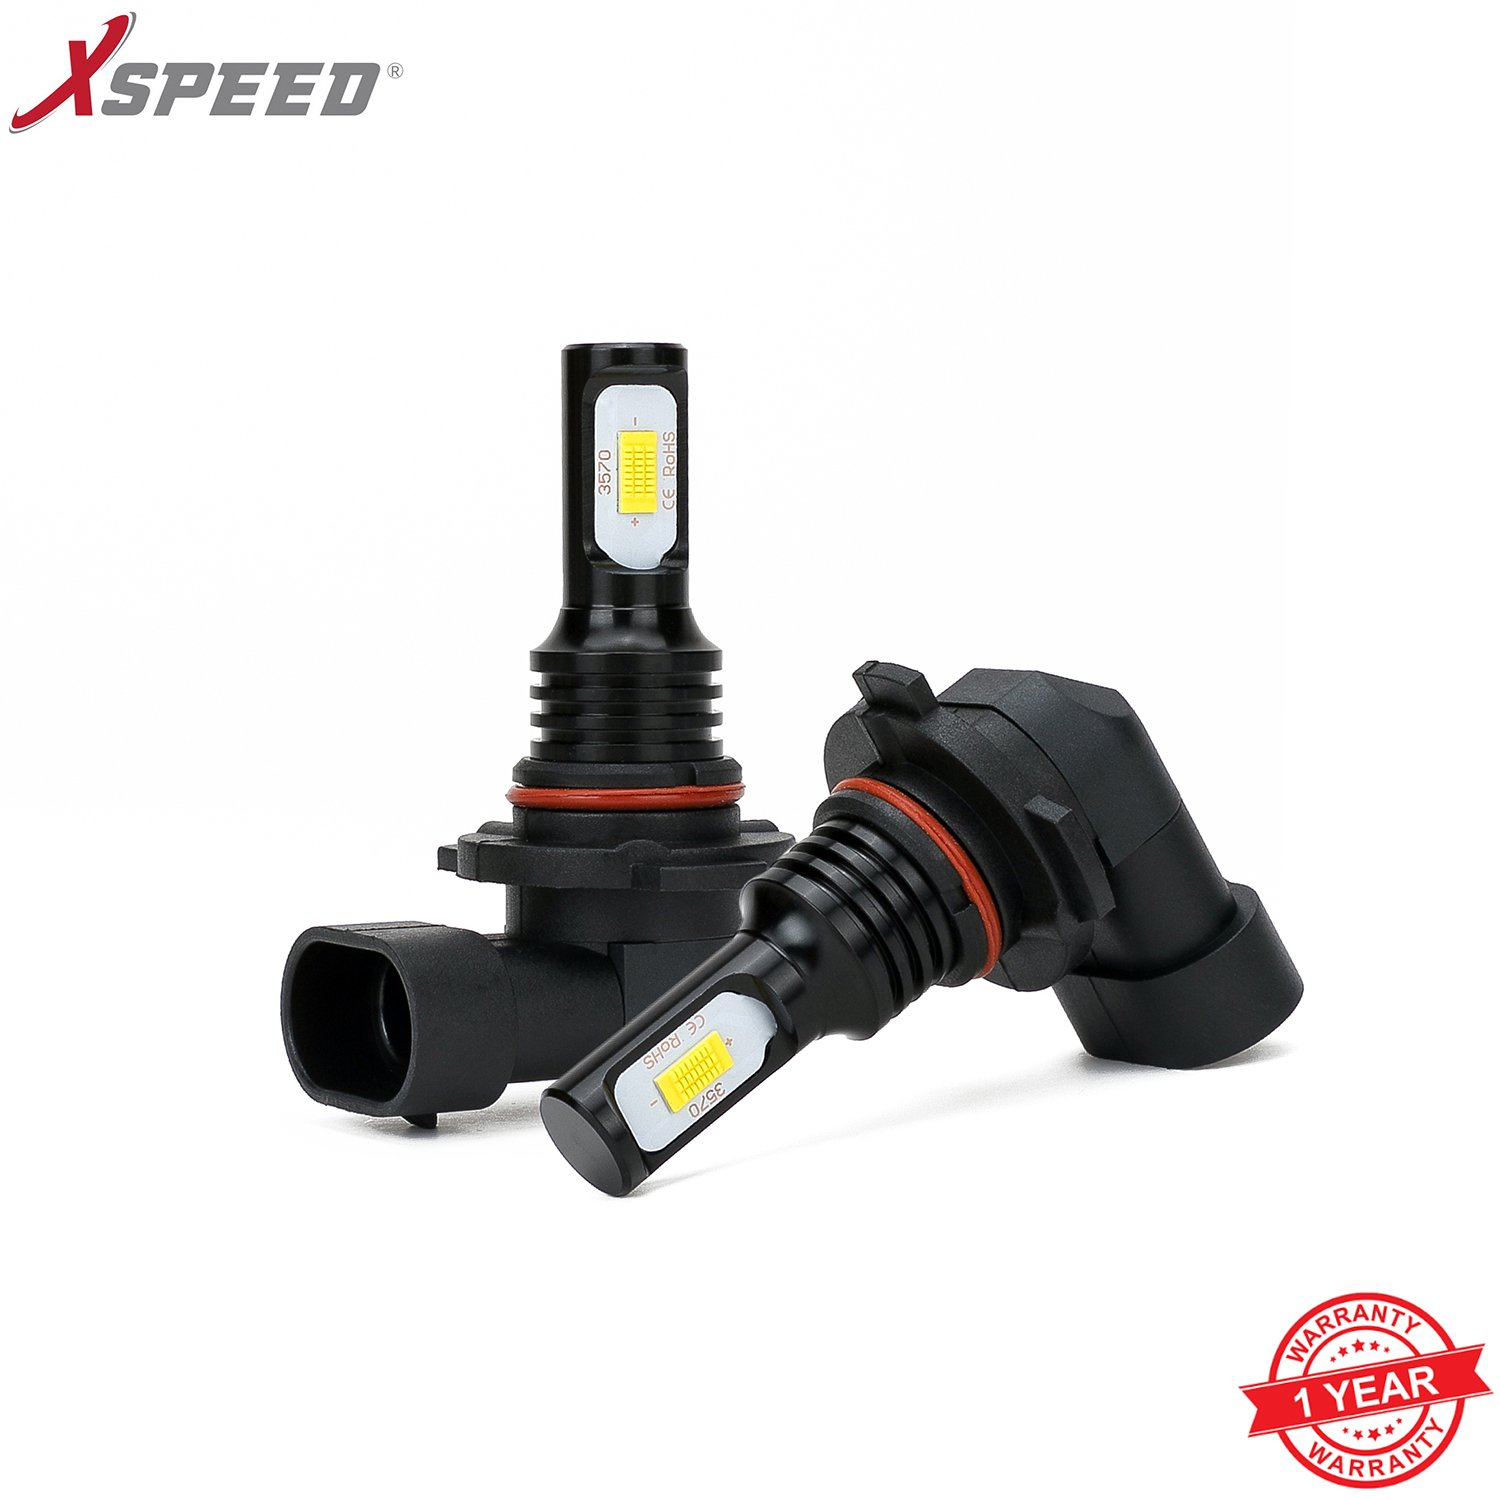 XSPEED 9012 HIR2 LED Headlight Bulbs X8 Series 9600 Lumens Extremely Super Bright XTC Chips All-in-One Conversion Kit Xenon White 6000k 2 Yr Warranty